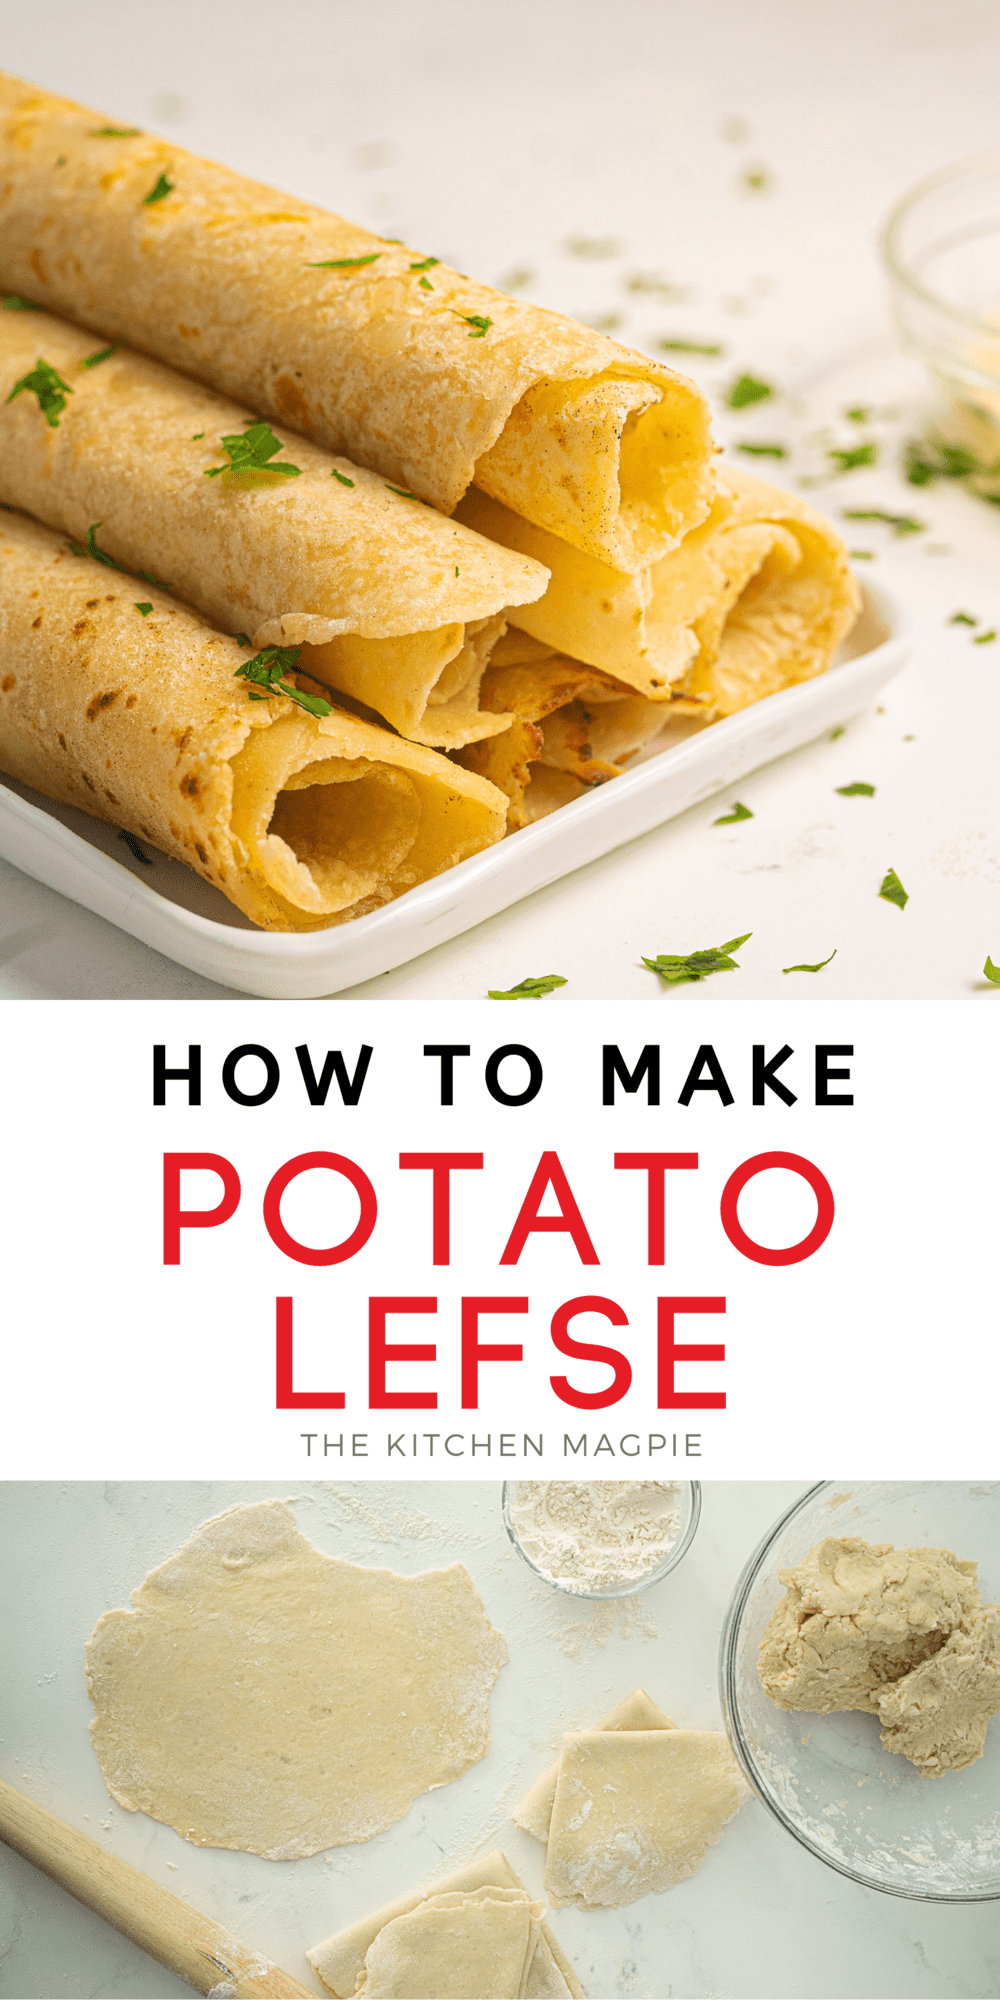 How to make potato lefse, a Norwegian flatbread recipe that is similar to a crepe but uses up mashed potatoes! Have them with butter or jam if desired.